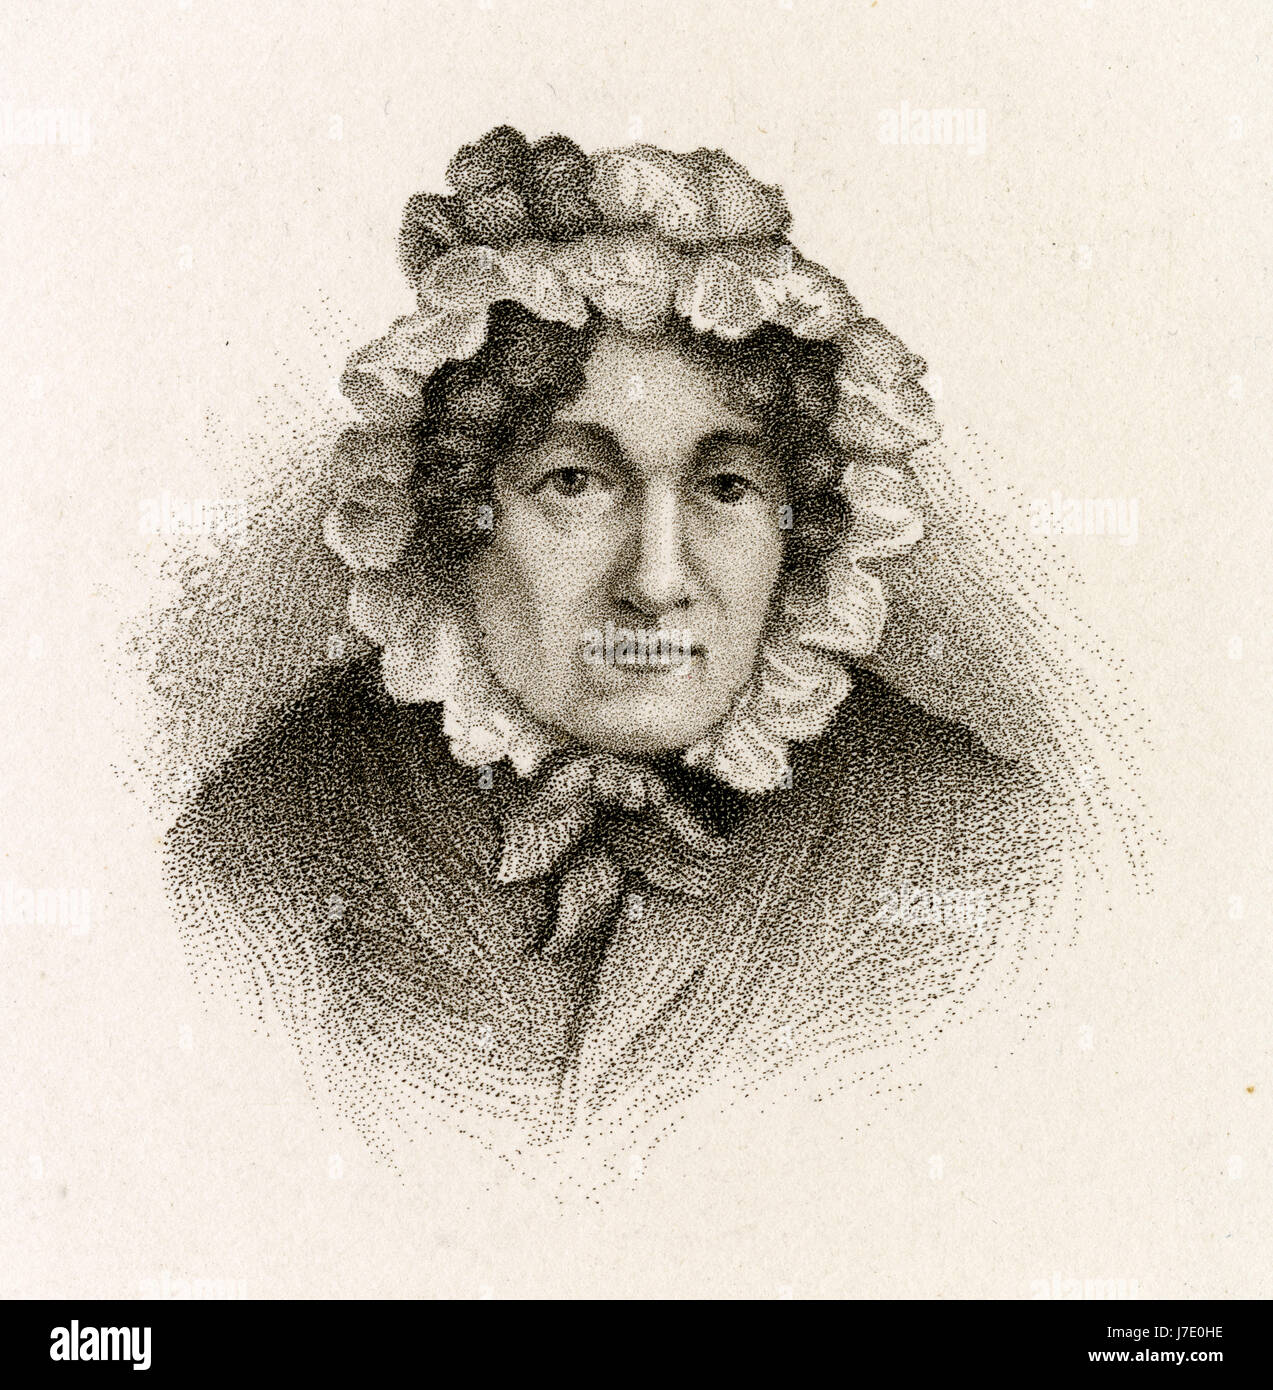 Antique c1860 engraving, Mary Lamb. Mary Ann Lamb (1764-1847), was an English writer. She is best known for the - Stock Image